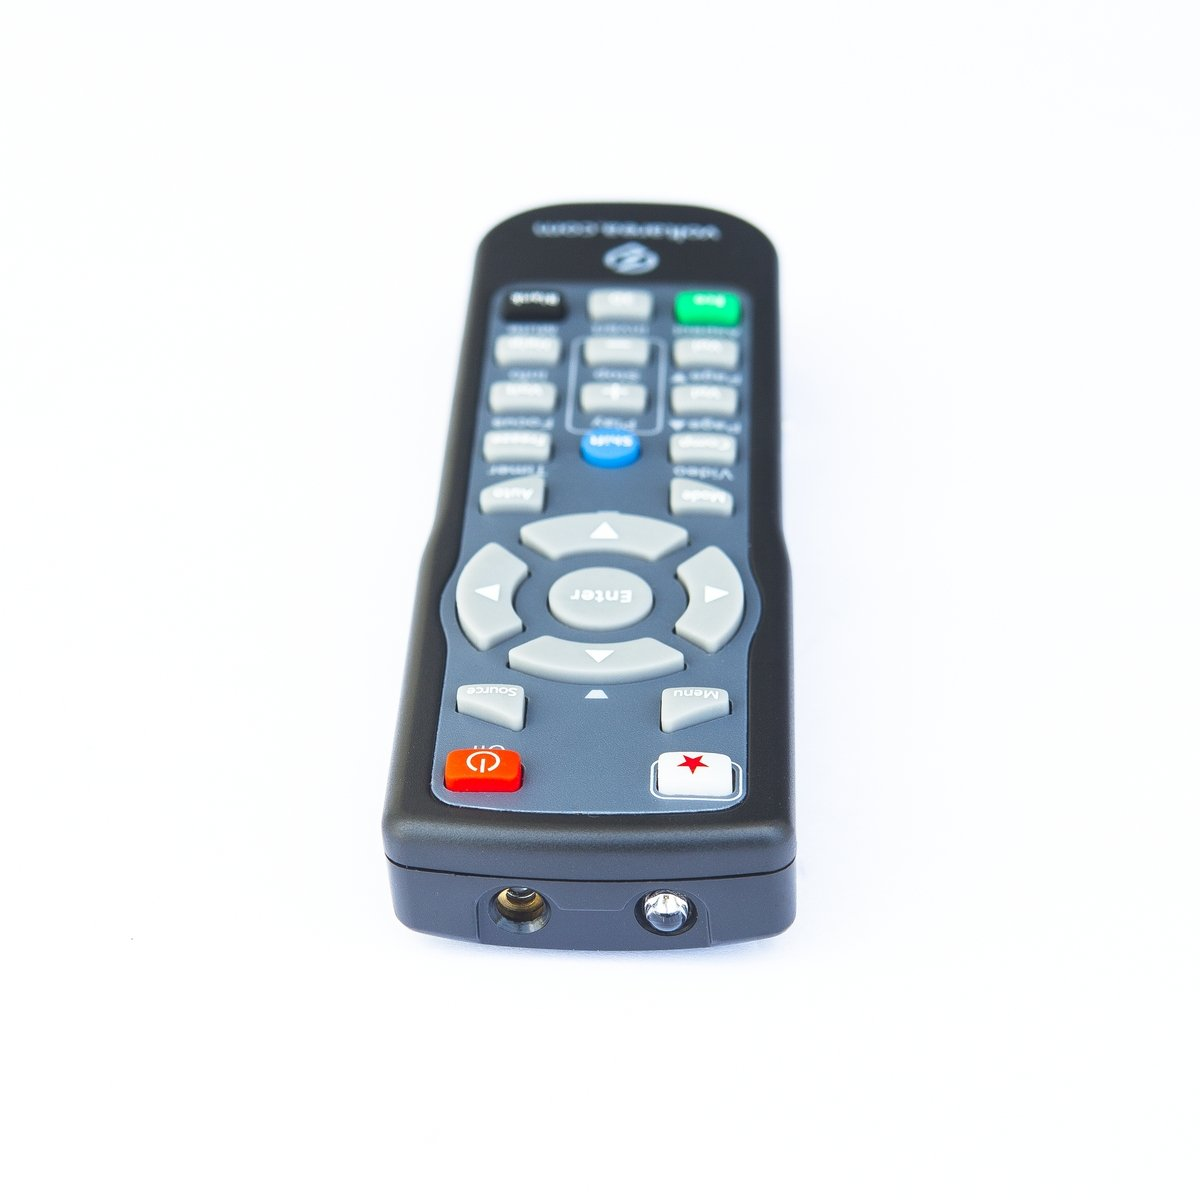 Remote Control for BenQ PB2120 Projector with Laser Pointer